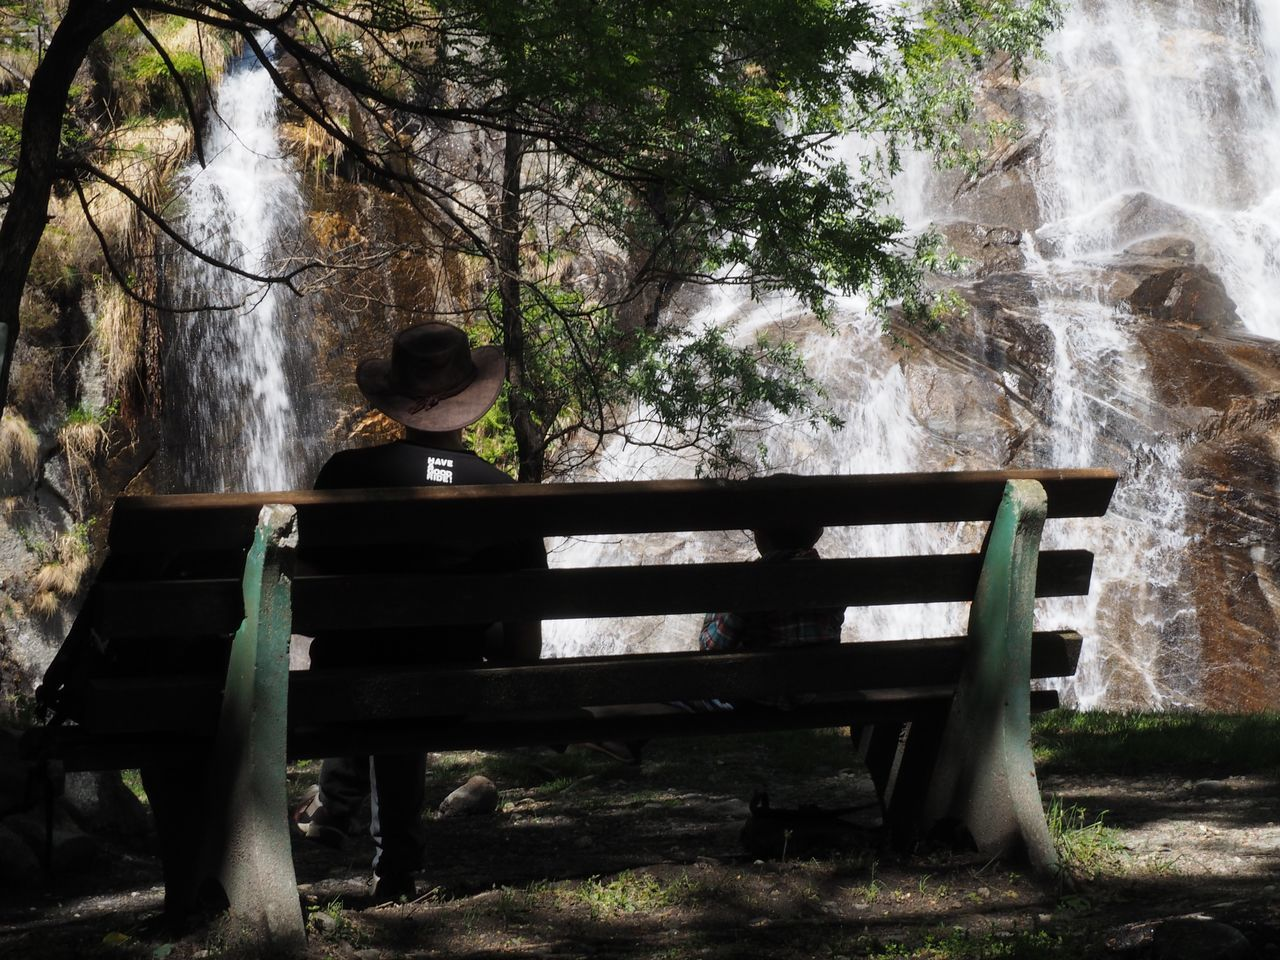 Alps Beauty In Nature Child Childhood Day Forest Growth Mountain Nature Outdoors People Real People Scenics Switzerland Ticino Tree Two People Waterfall Wood - Material